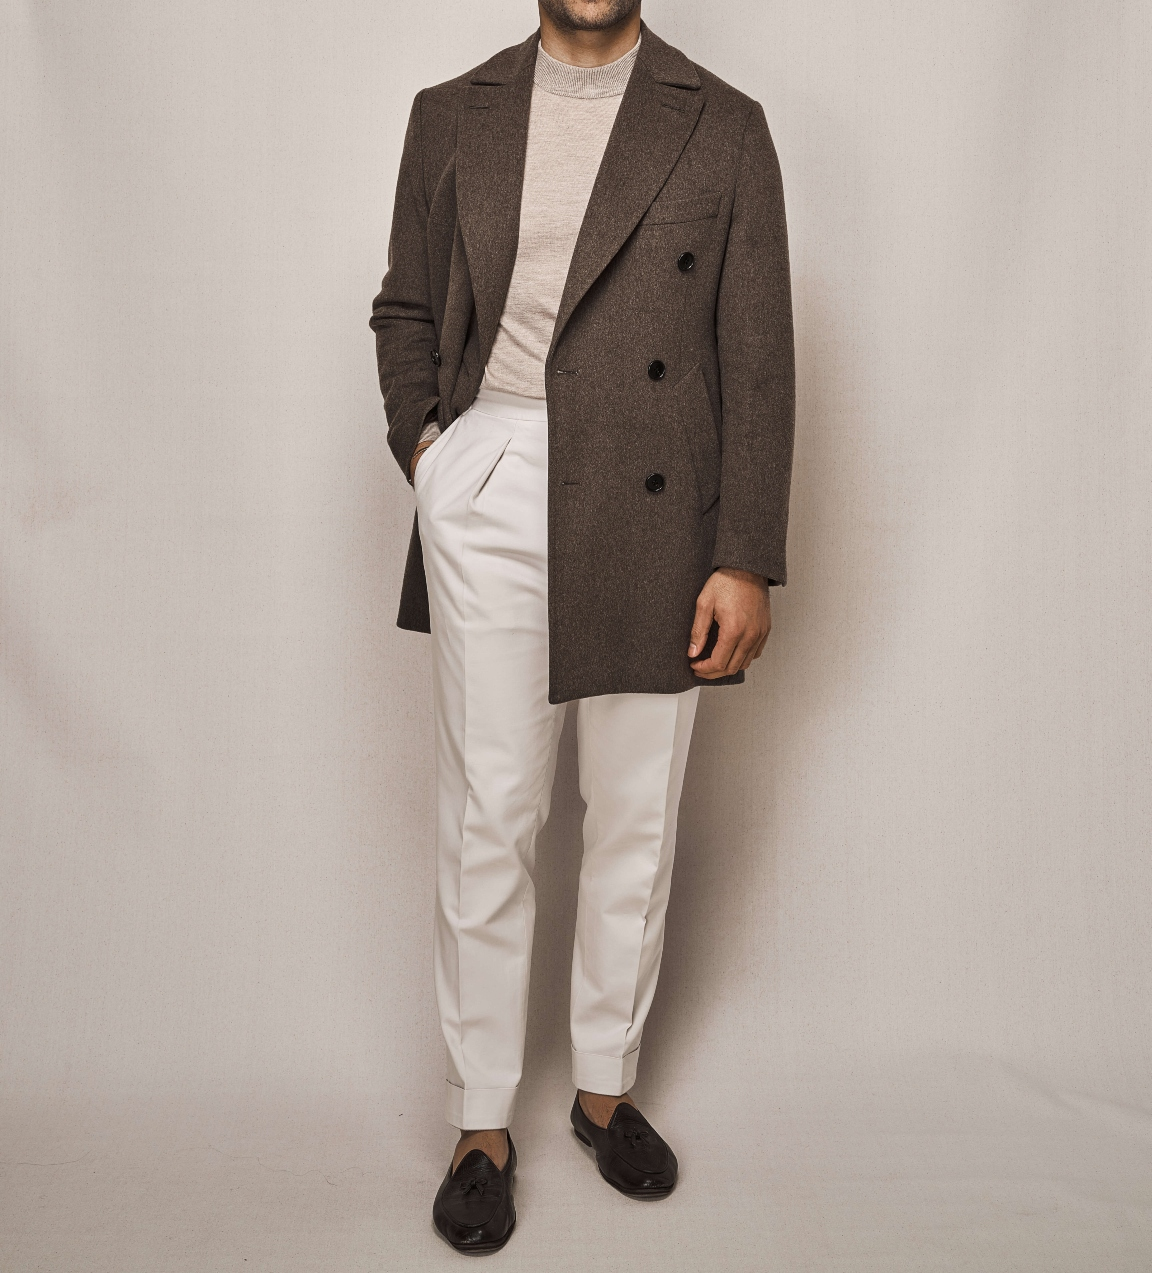 Double Breasted Overcoat | White Cotton Stretch Trouser